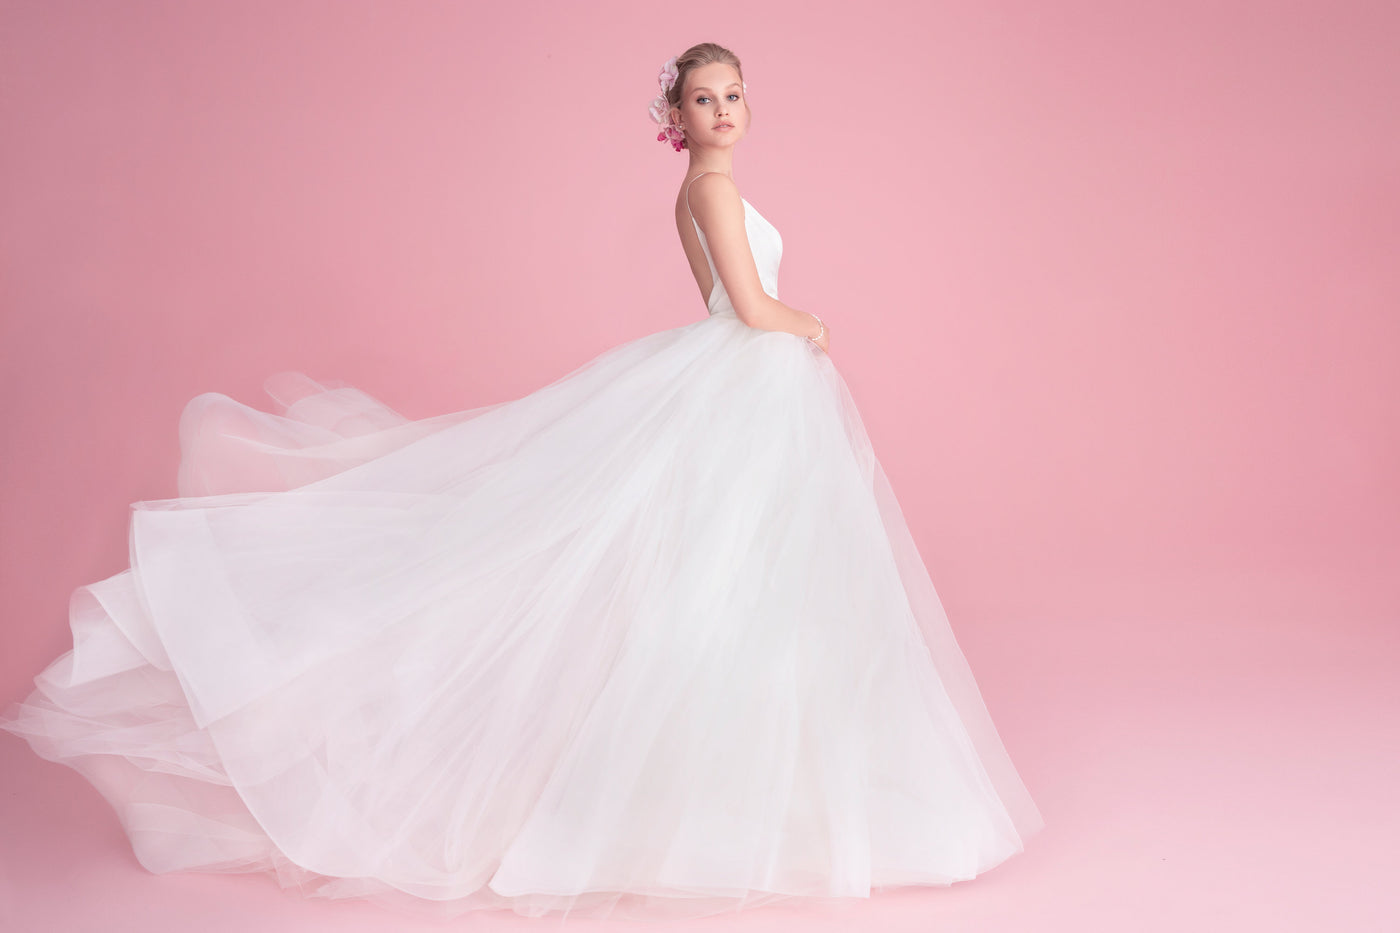 THE ULTIMATE GUIDE FOR BUYING YOUR WEDDING DRESS ONLINE